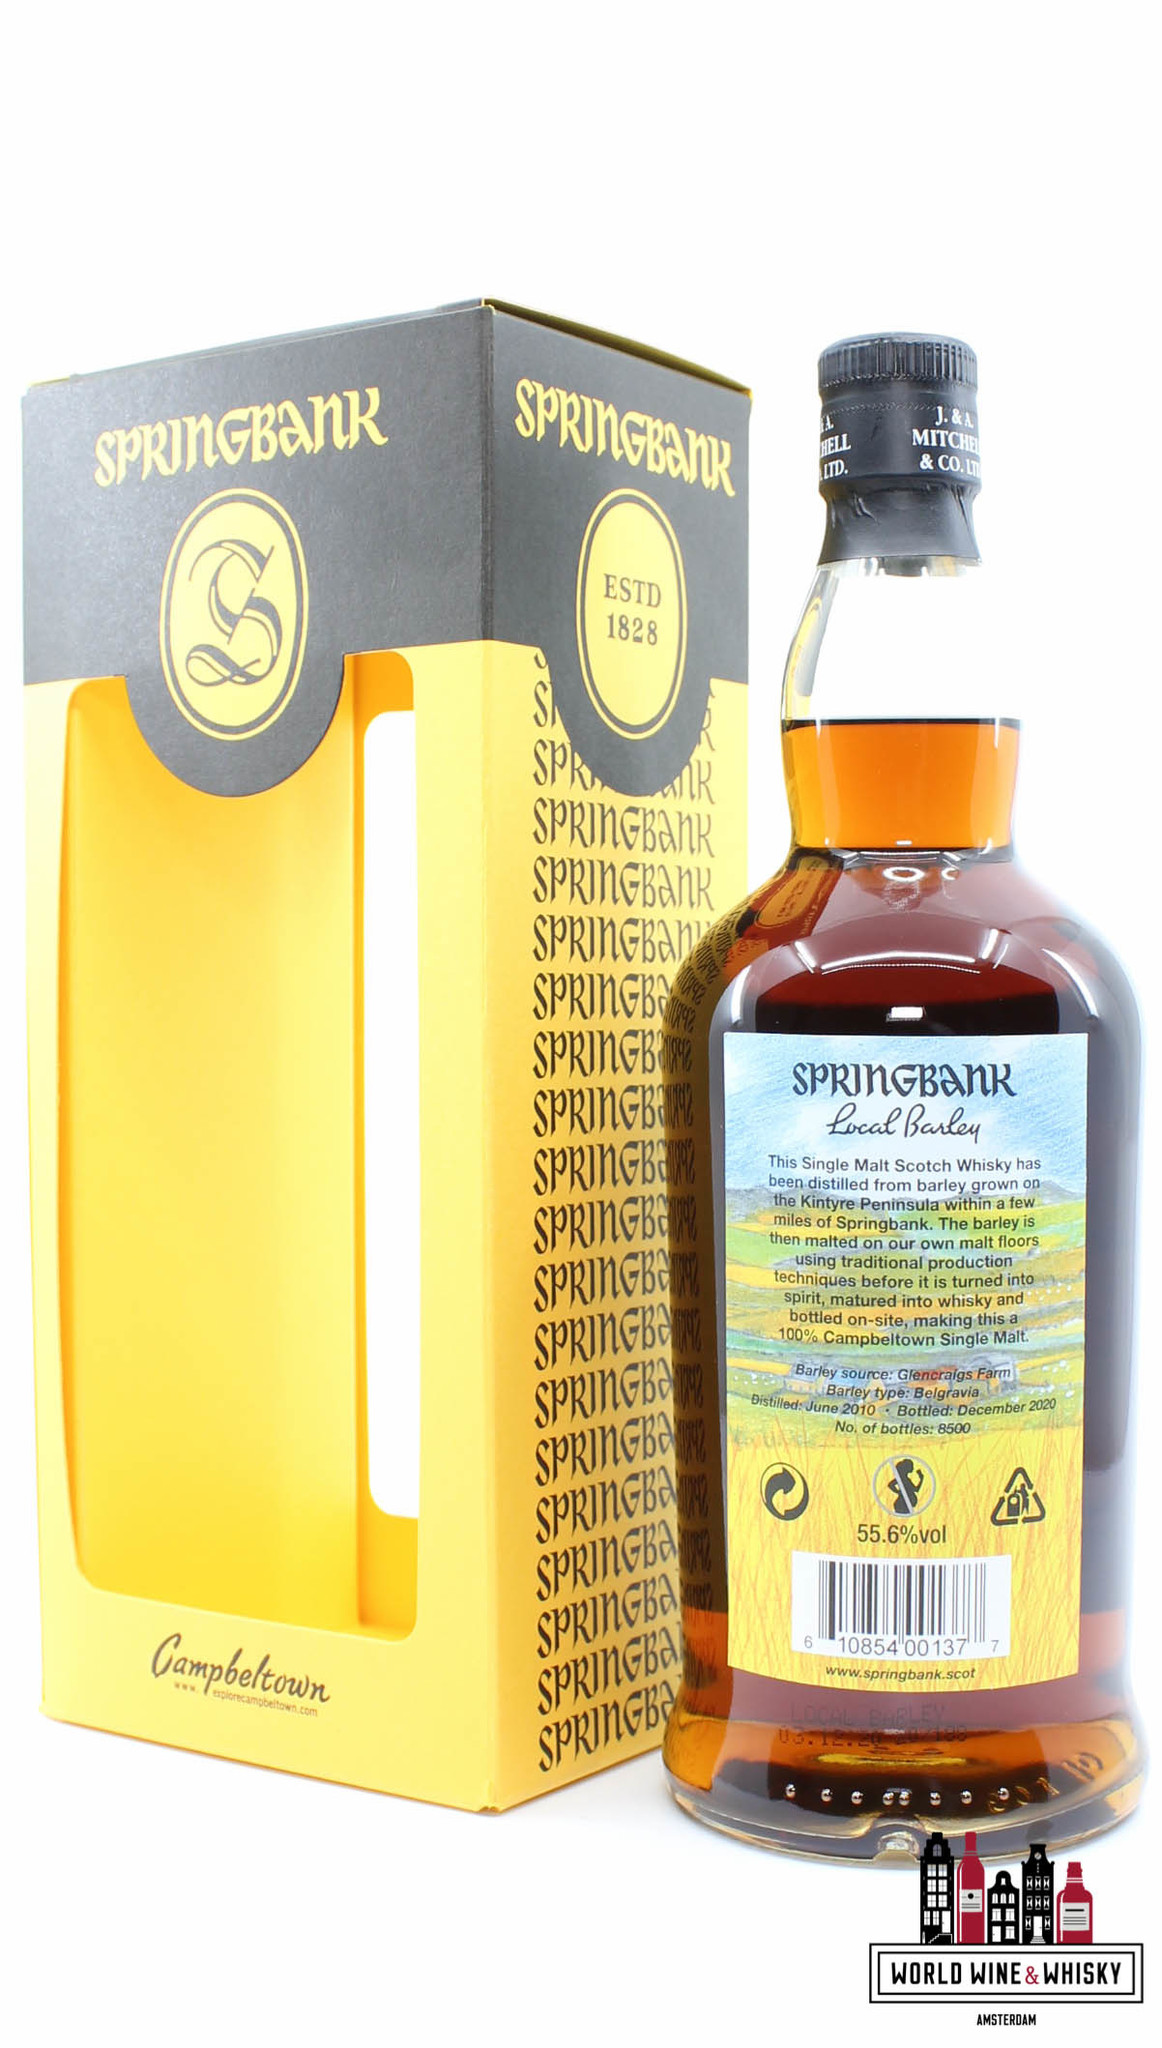 Springbank Springbank 10 Years Old 2010 2020 - Local Barley 55.6% (1 of 8500)